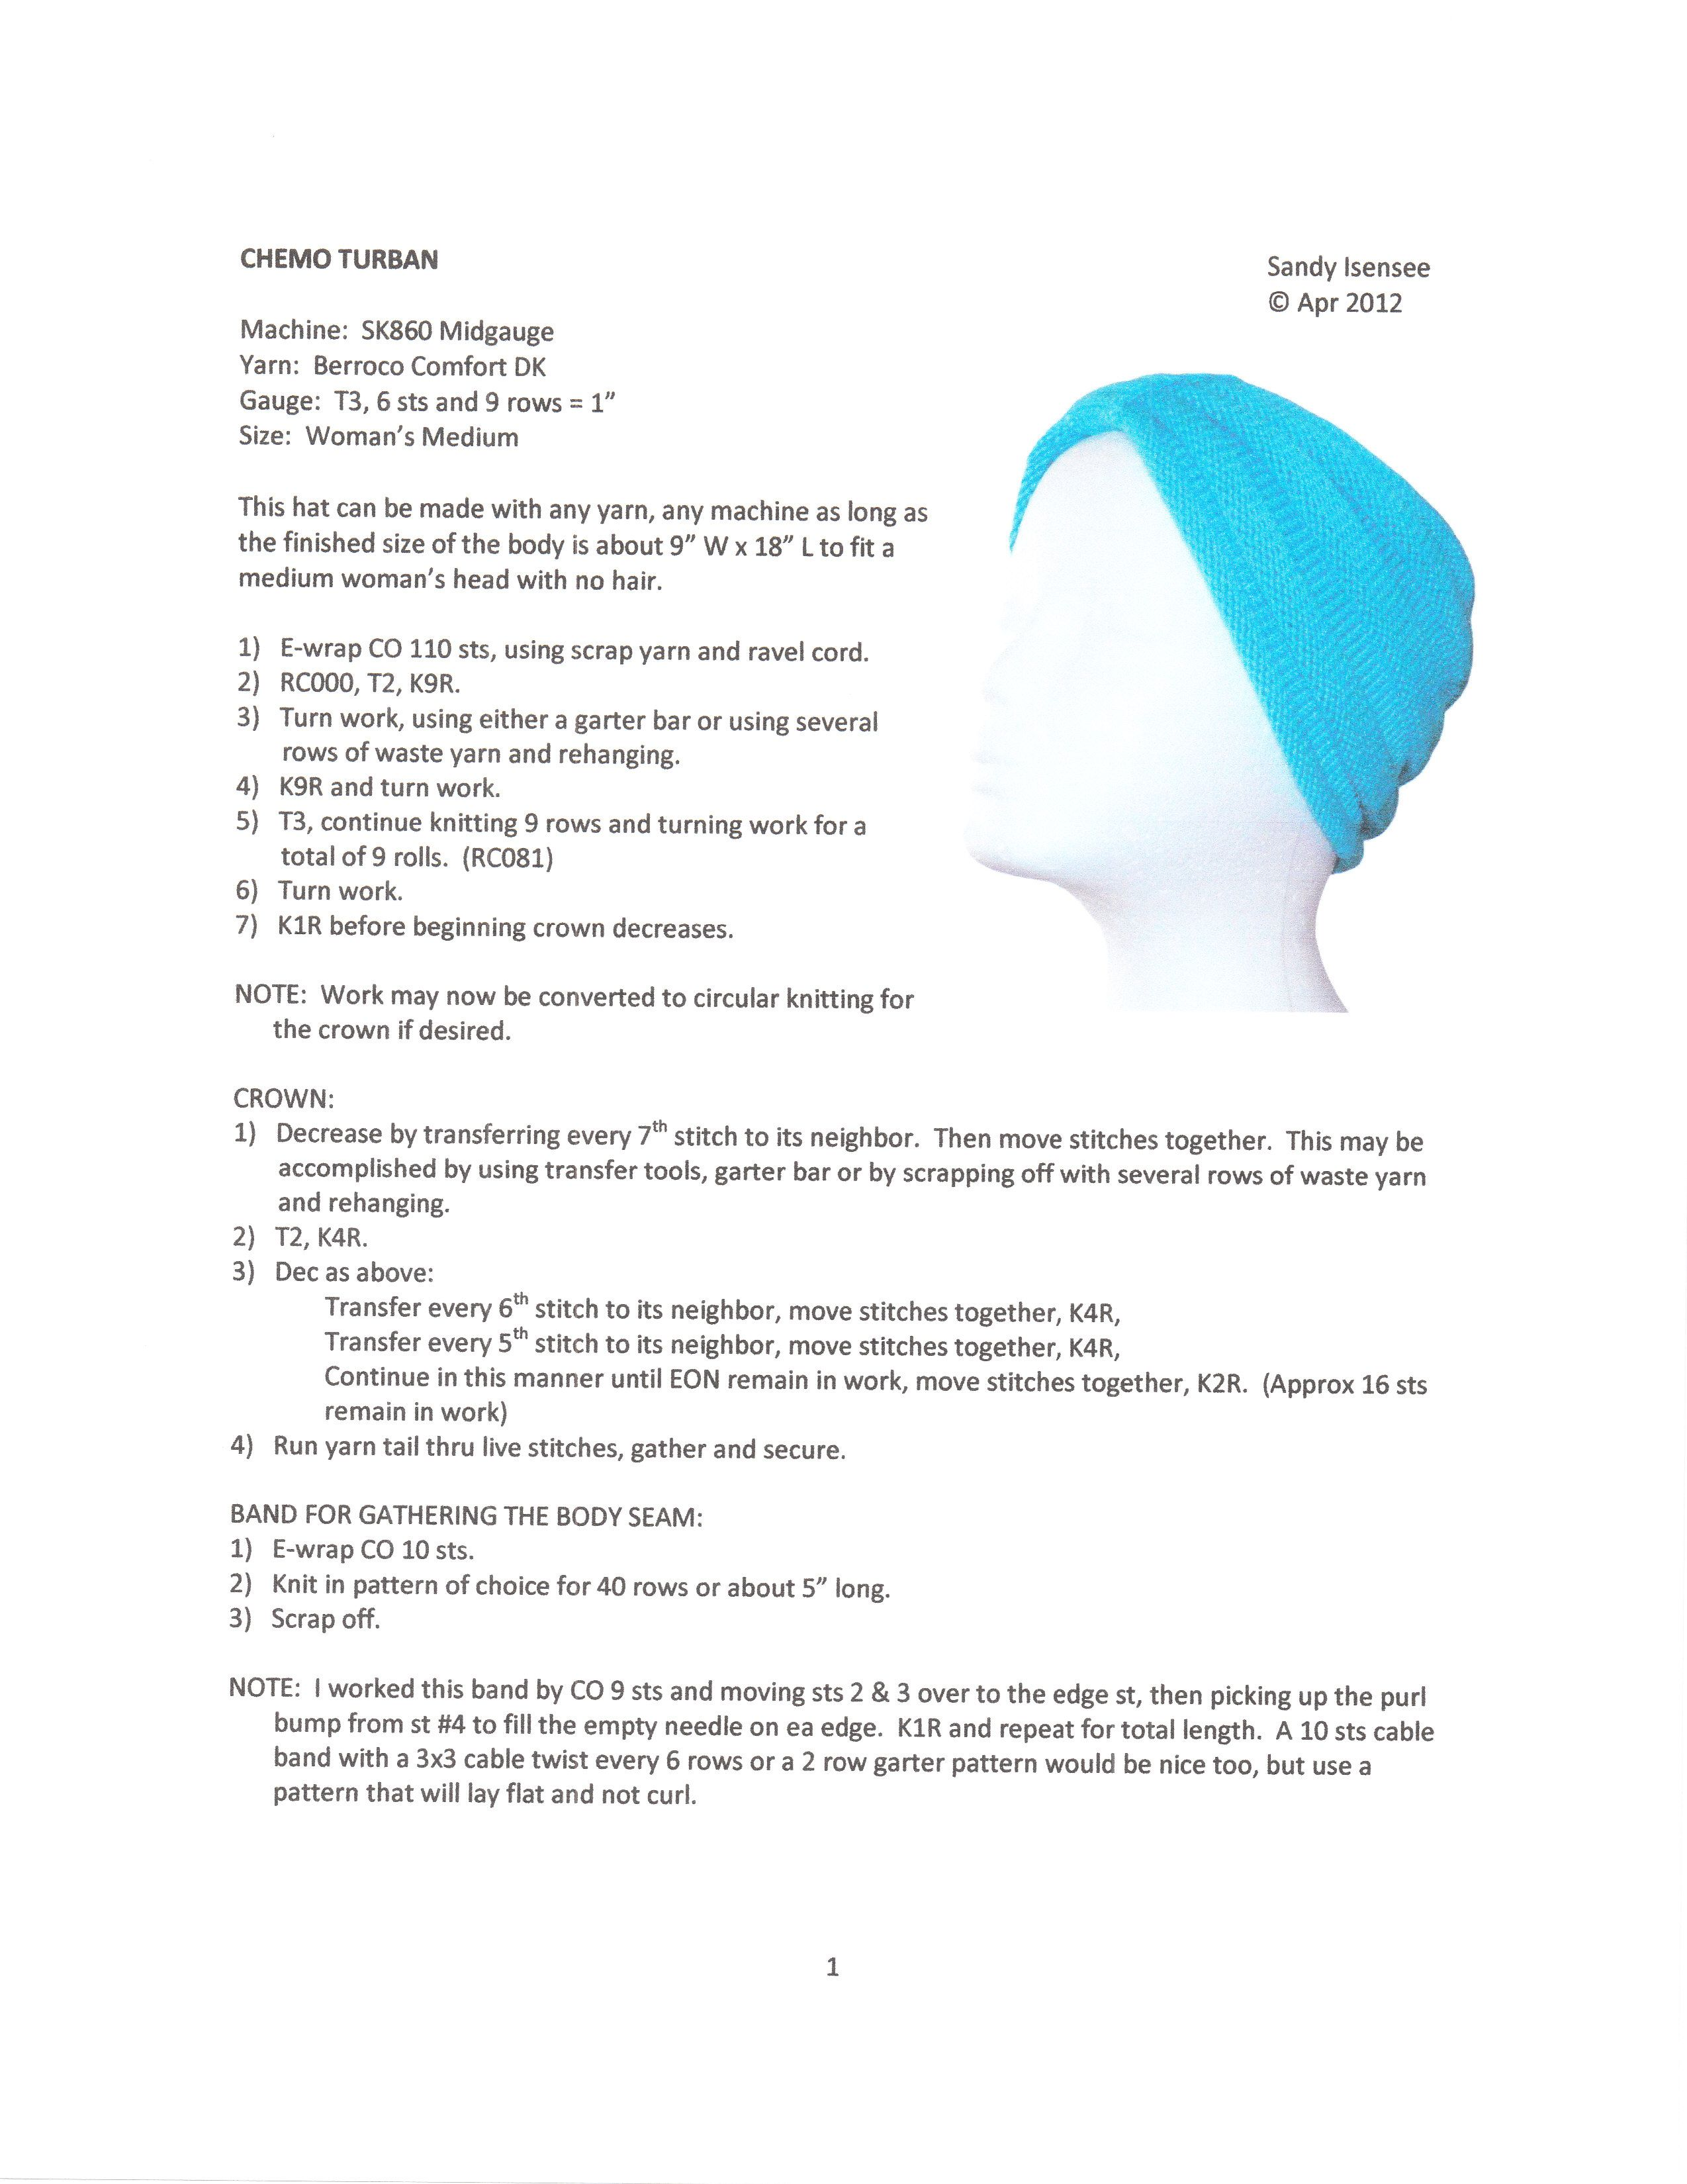 Chemo turban Pattern | Sewing, Quilting, Needlecrafting | Pinterest ...